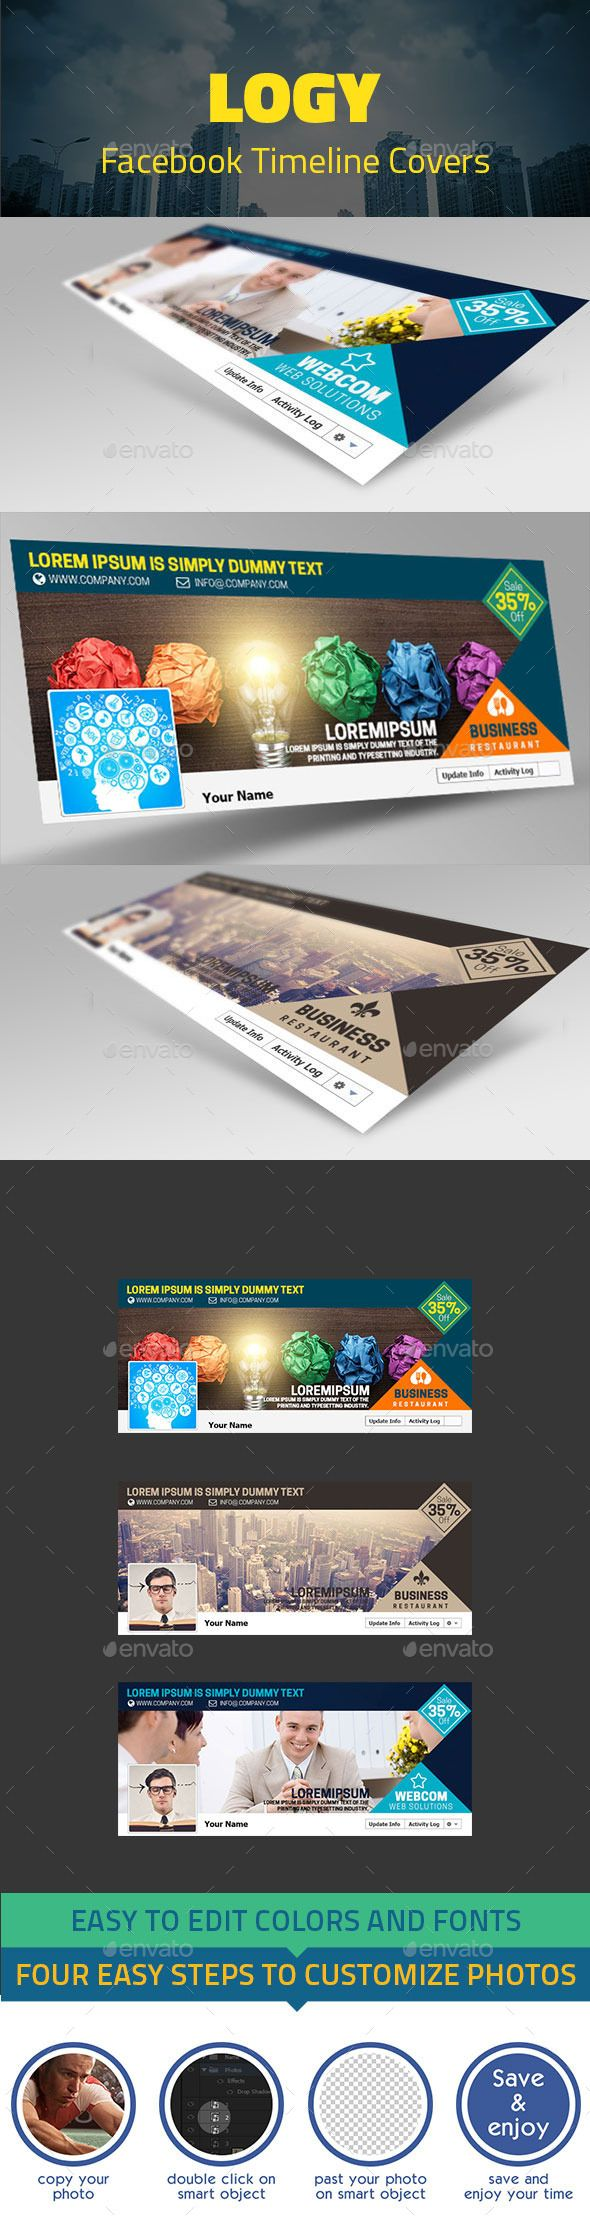 Logy Facebook Timelines Covers (Photoshop PSD, CS3, 851x315, cover, creative, creative timeline, design, facebook, facebook cover, facebook profile, Facebook timeline, food, layered, profile cover, psd, restaurant, timeline, timeline cover, web elements)